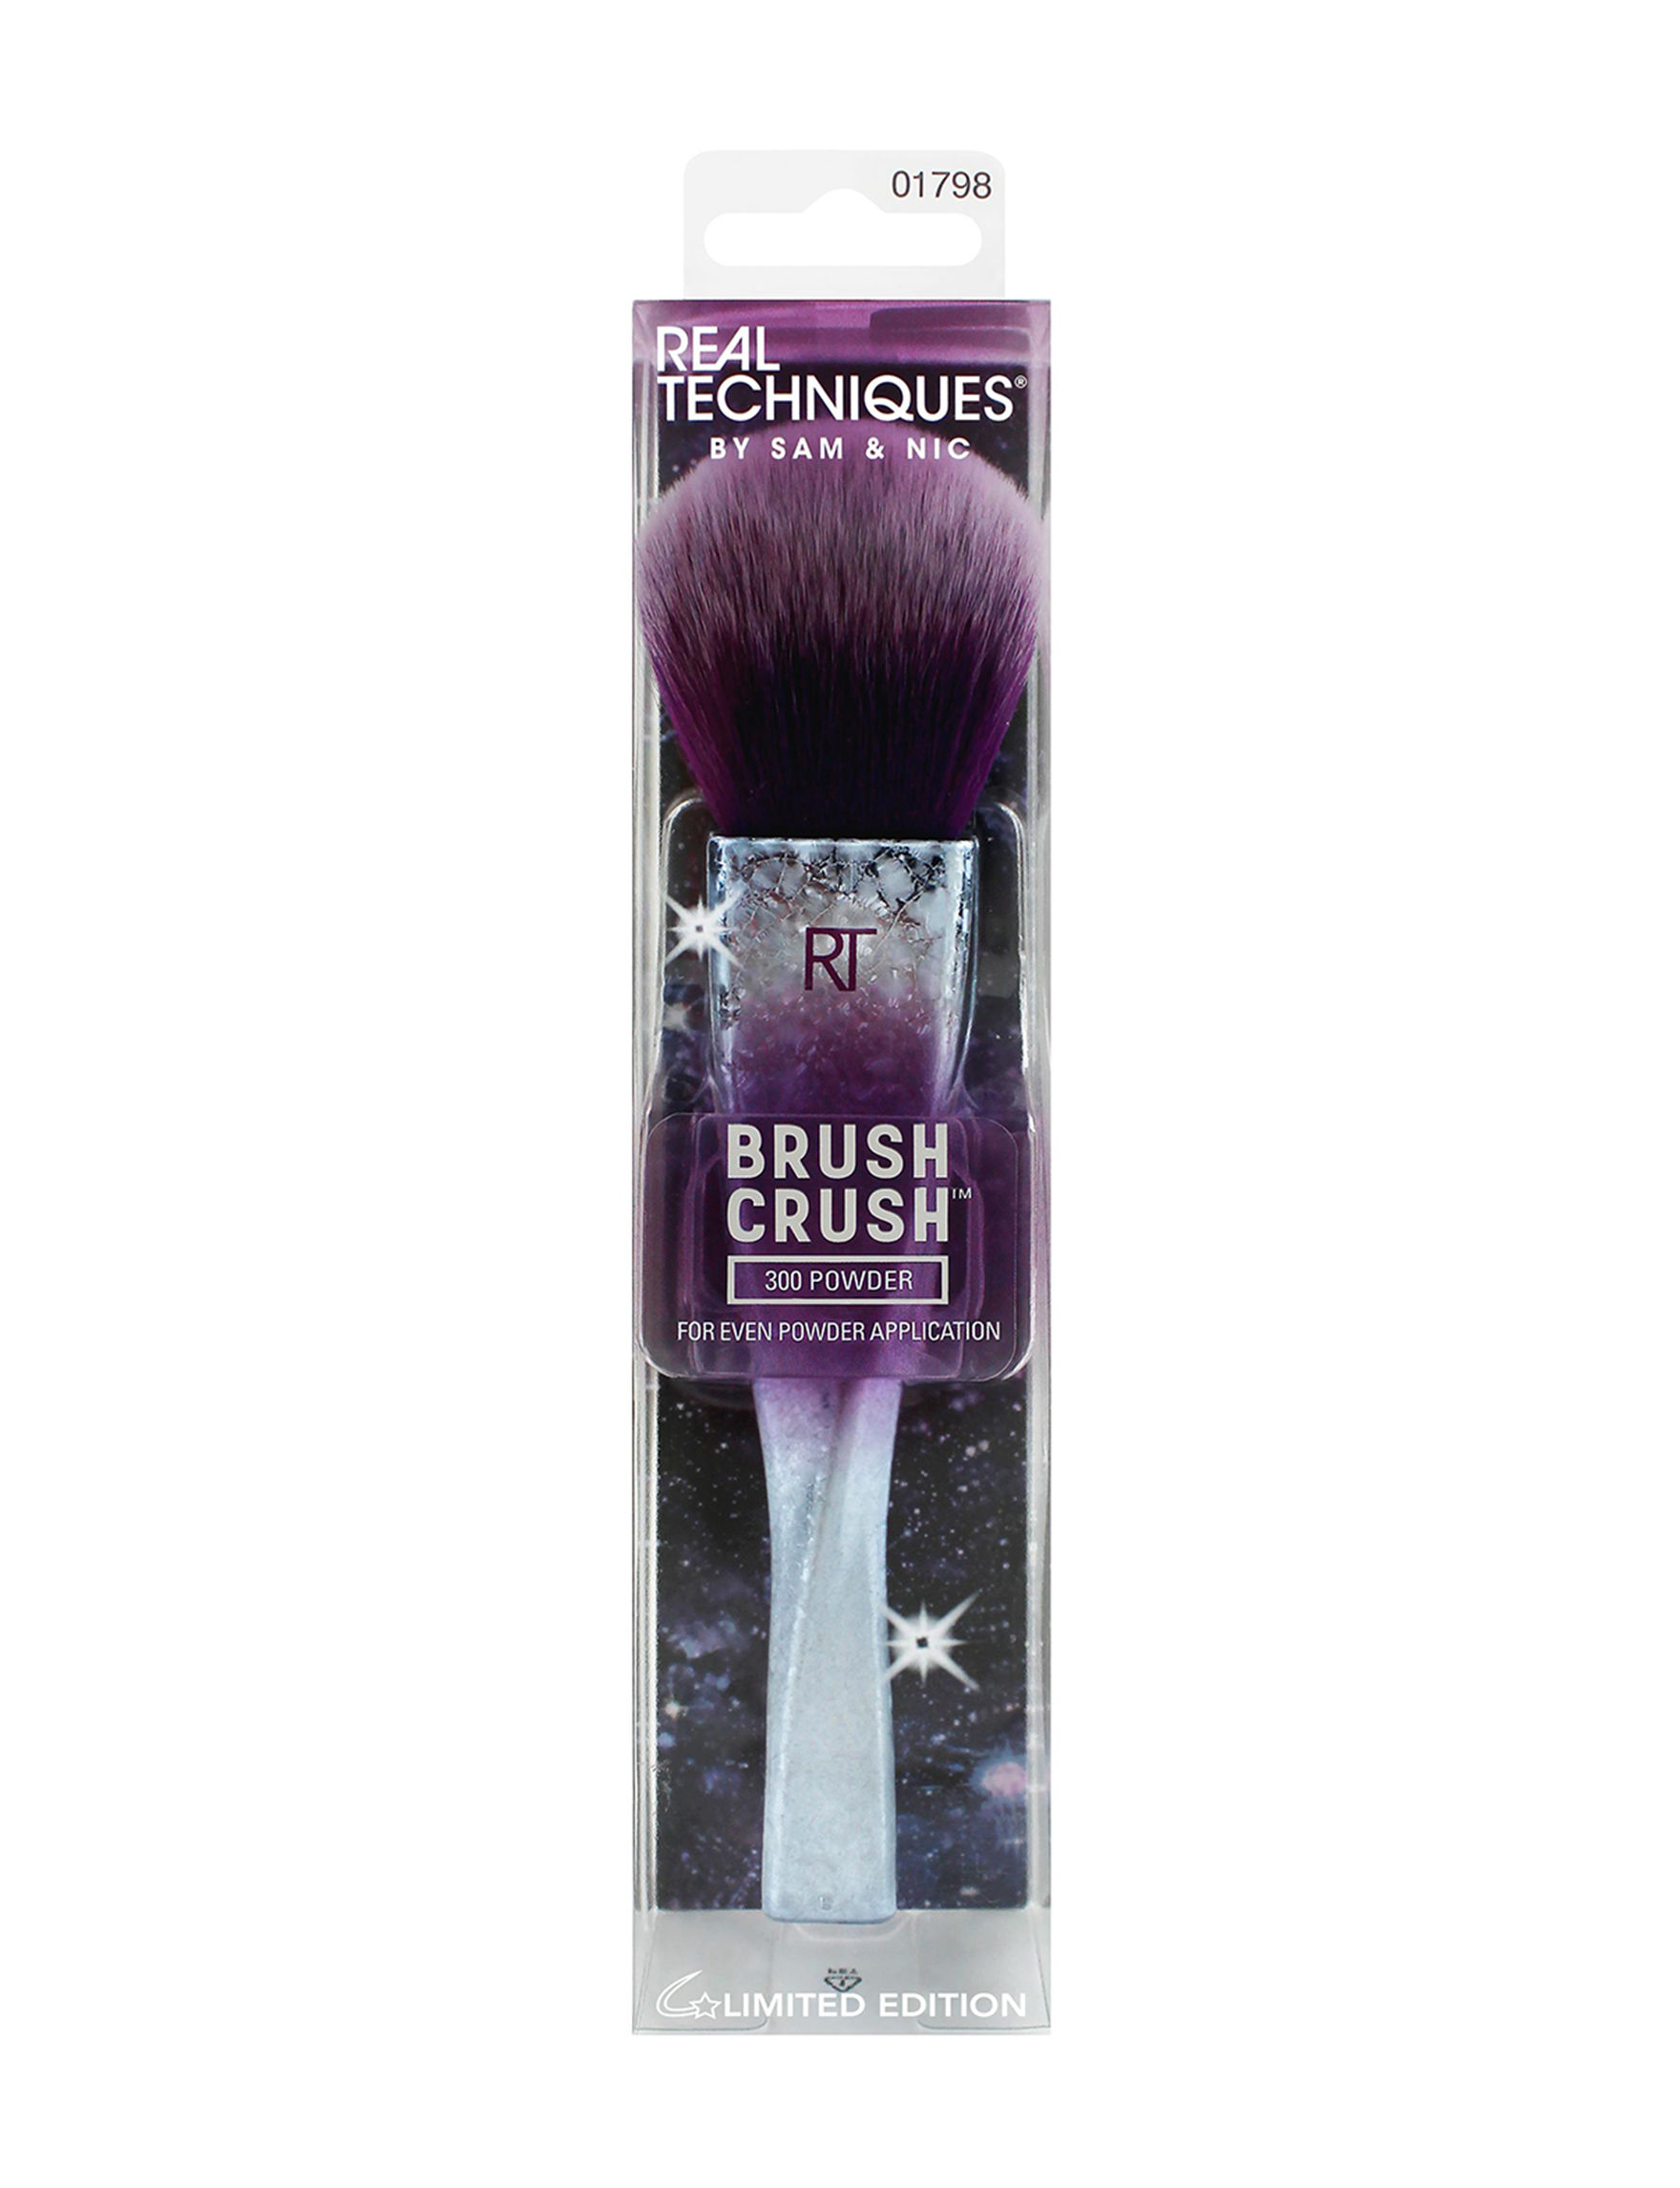 Real Techniques Silver / Purple Face Tools & Brushes Powder Brushes